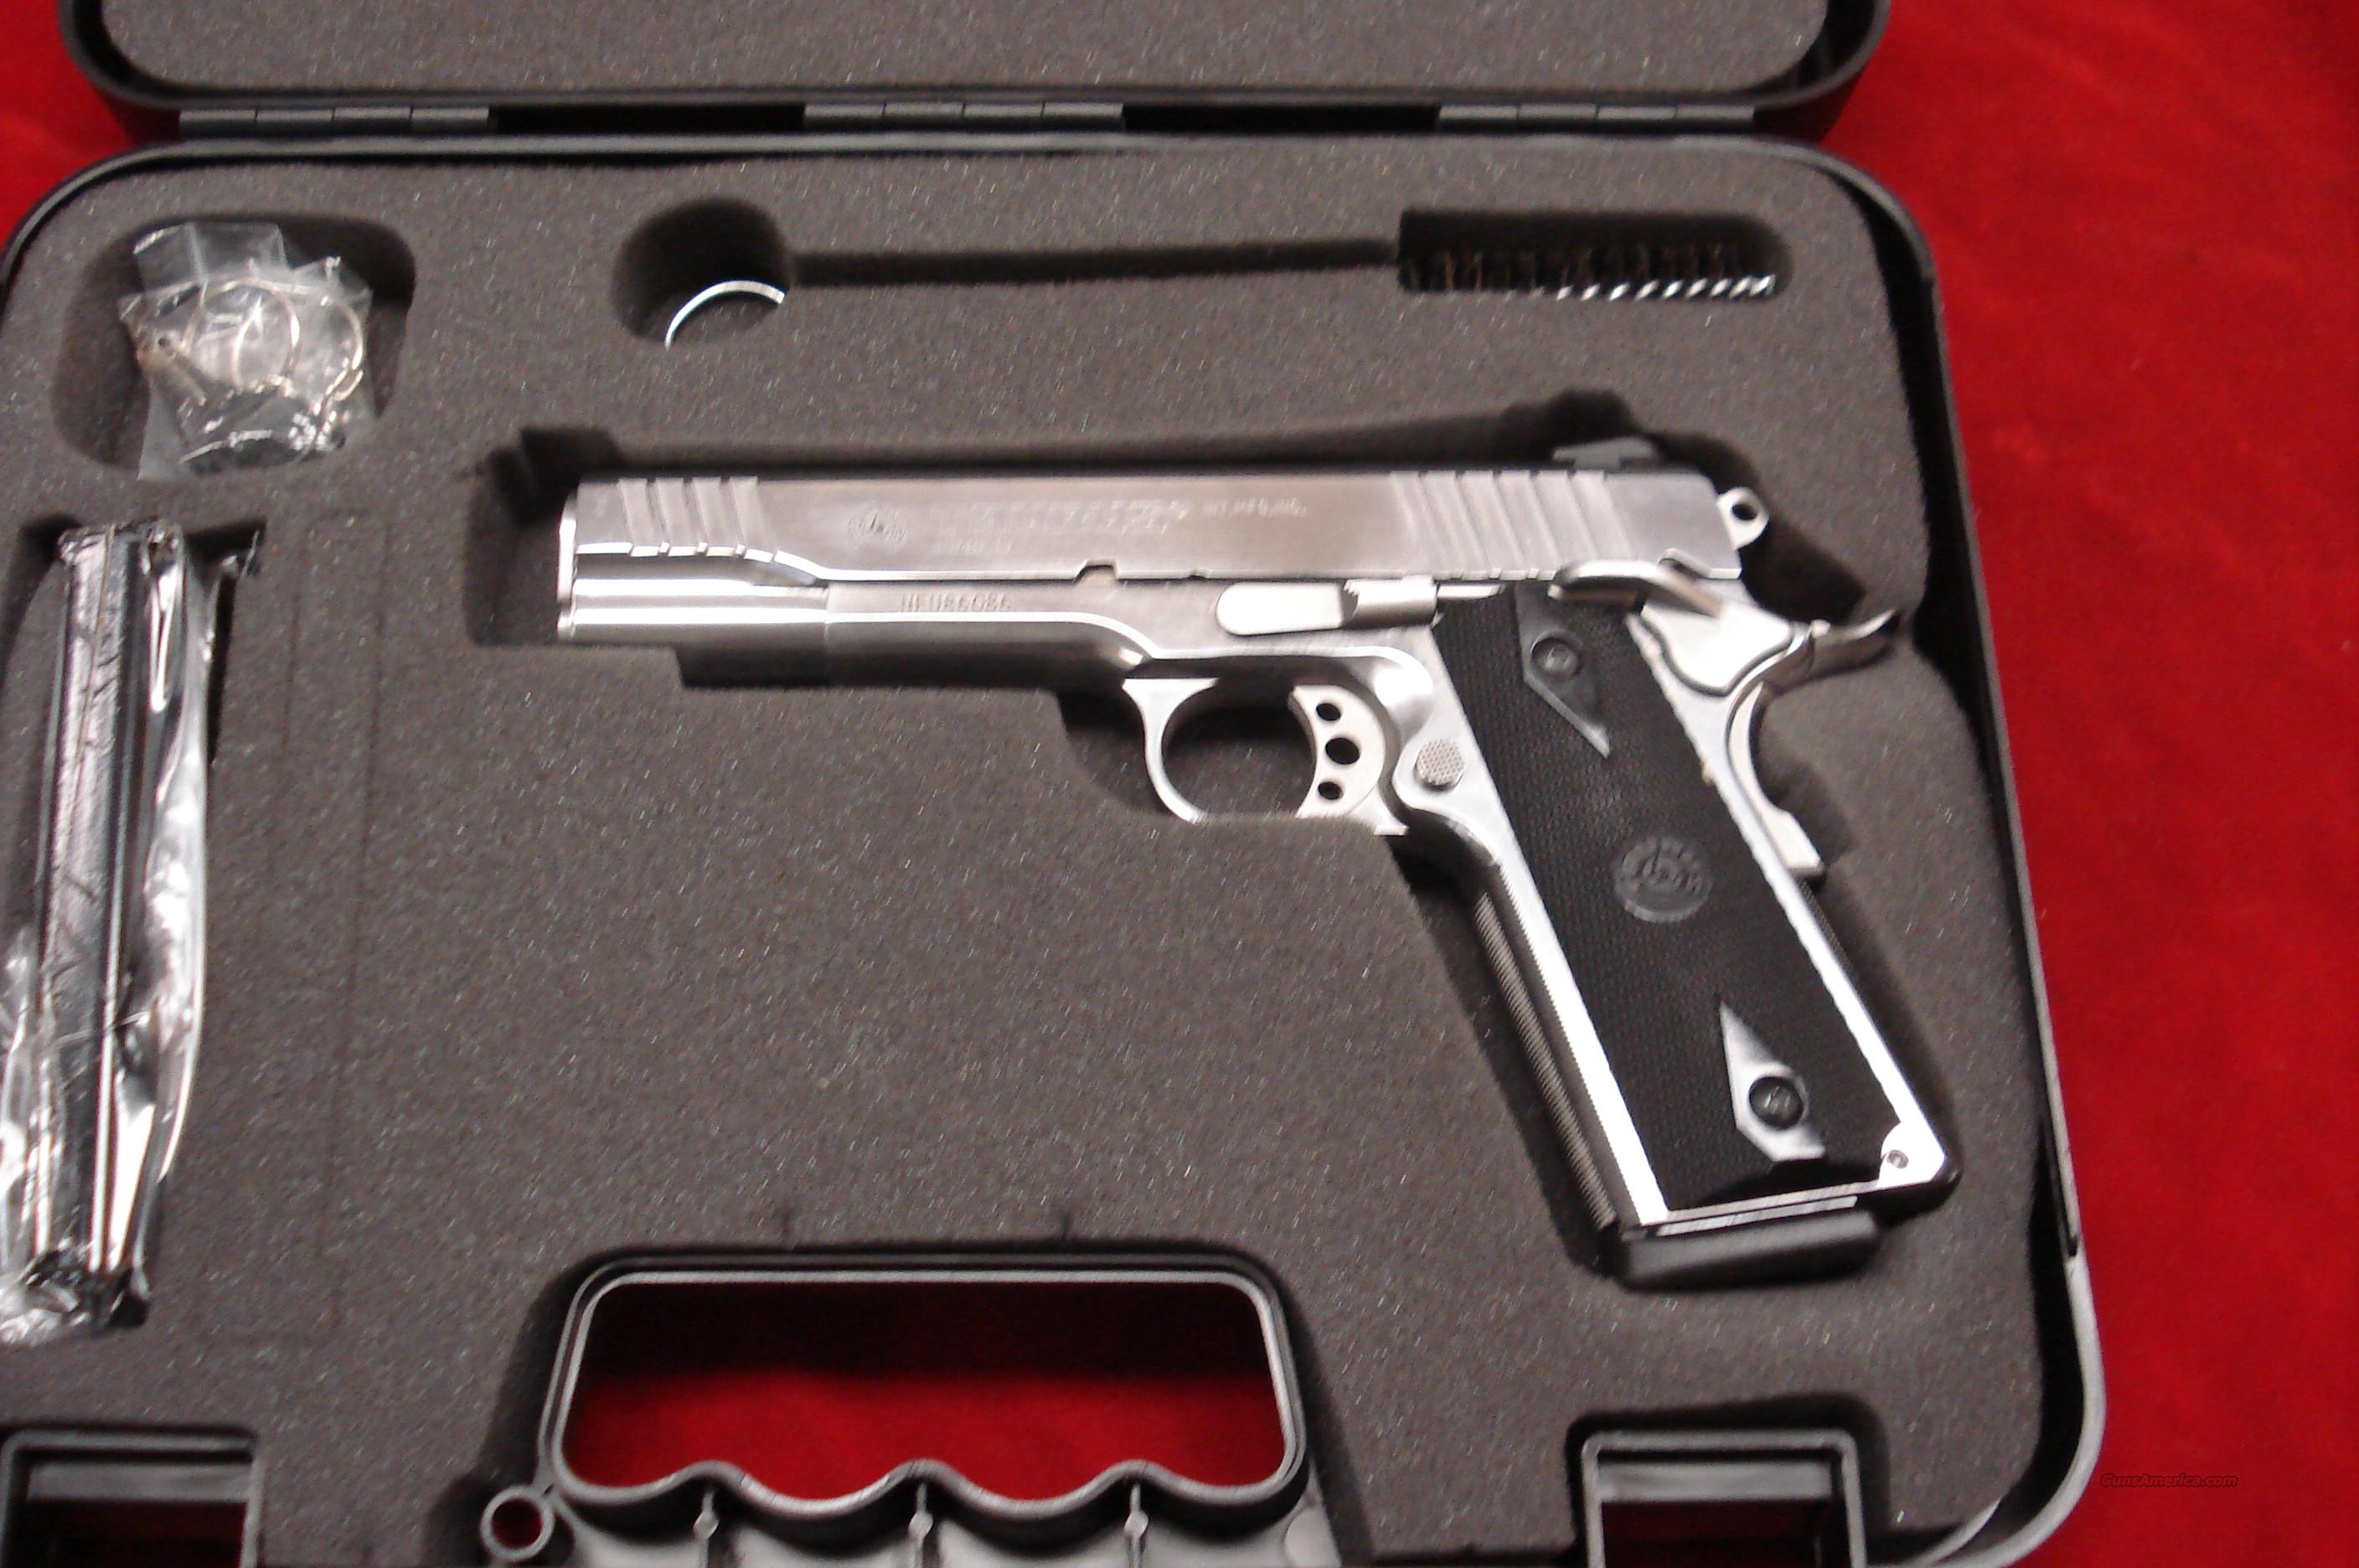 TAURUS POLISHED STAINLESS 1911 45 ACP NEW  Guns > Pistols > Taurus Pistols/Revolvers > Pistols > Steel Frame